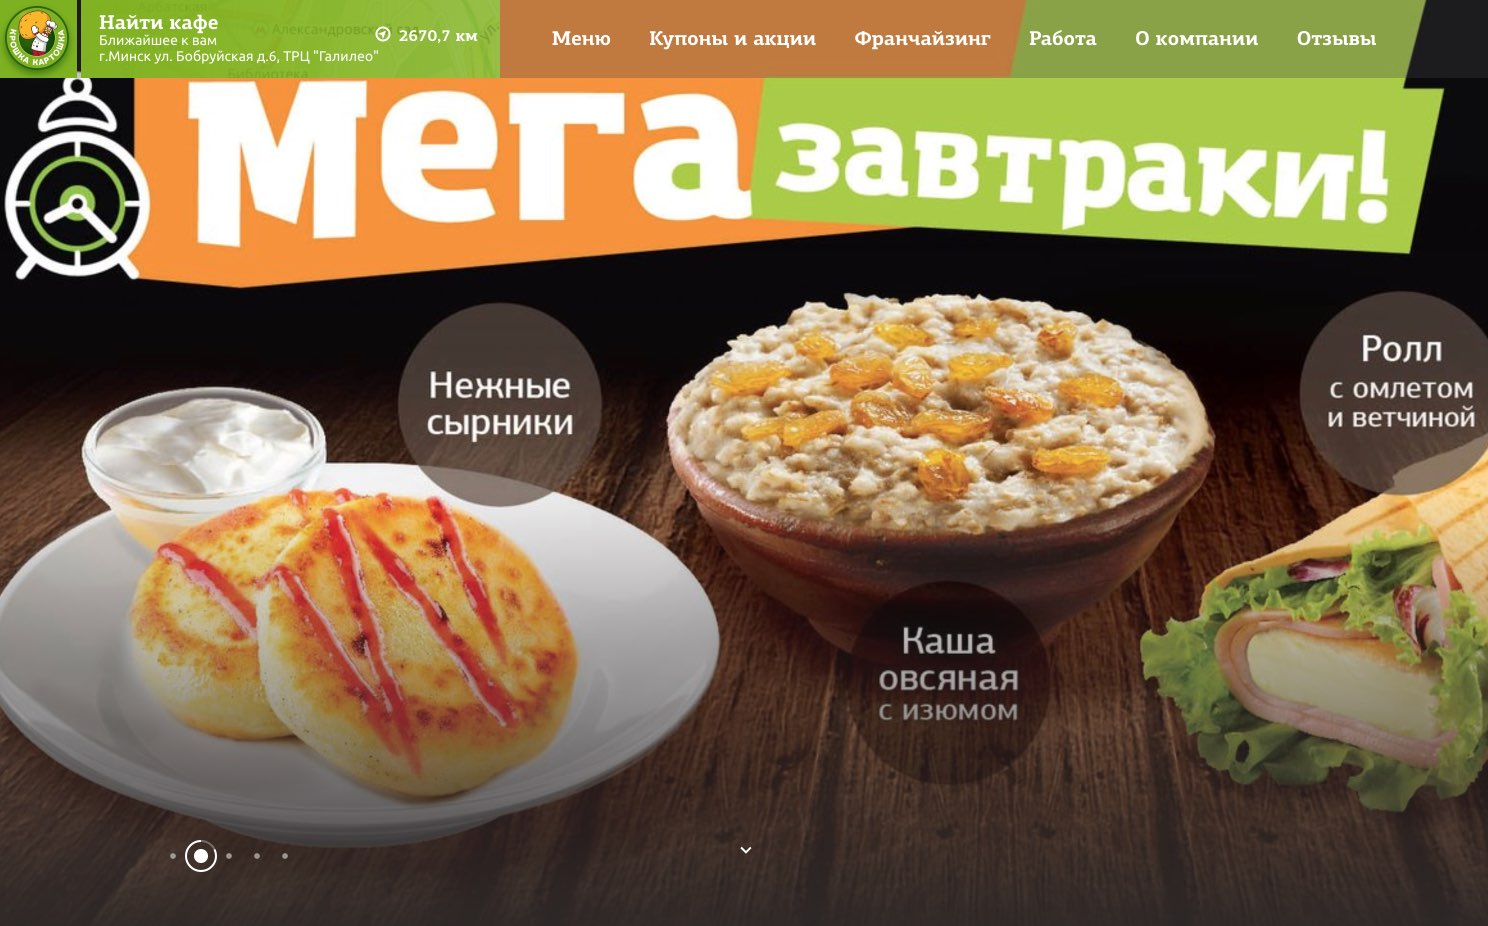 Potatoes in Russia - Fast food